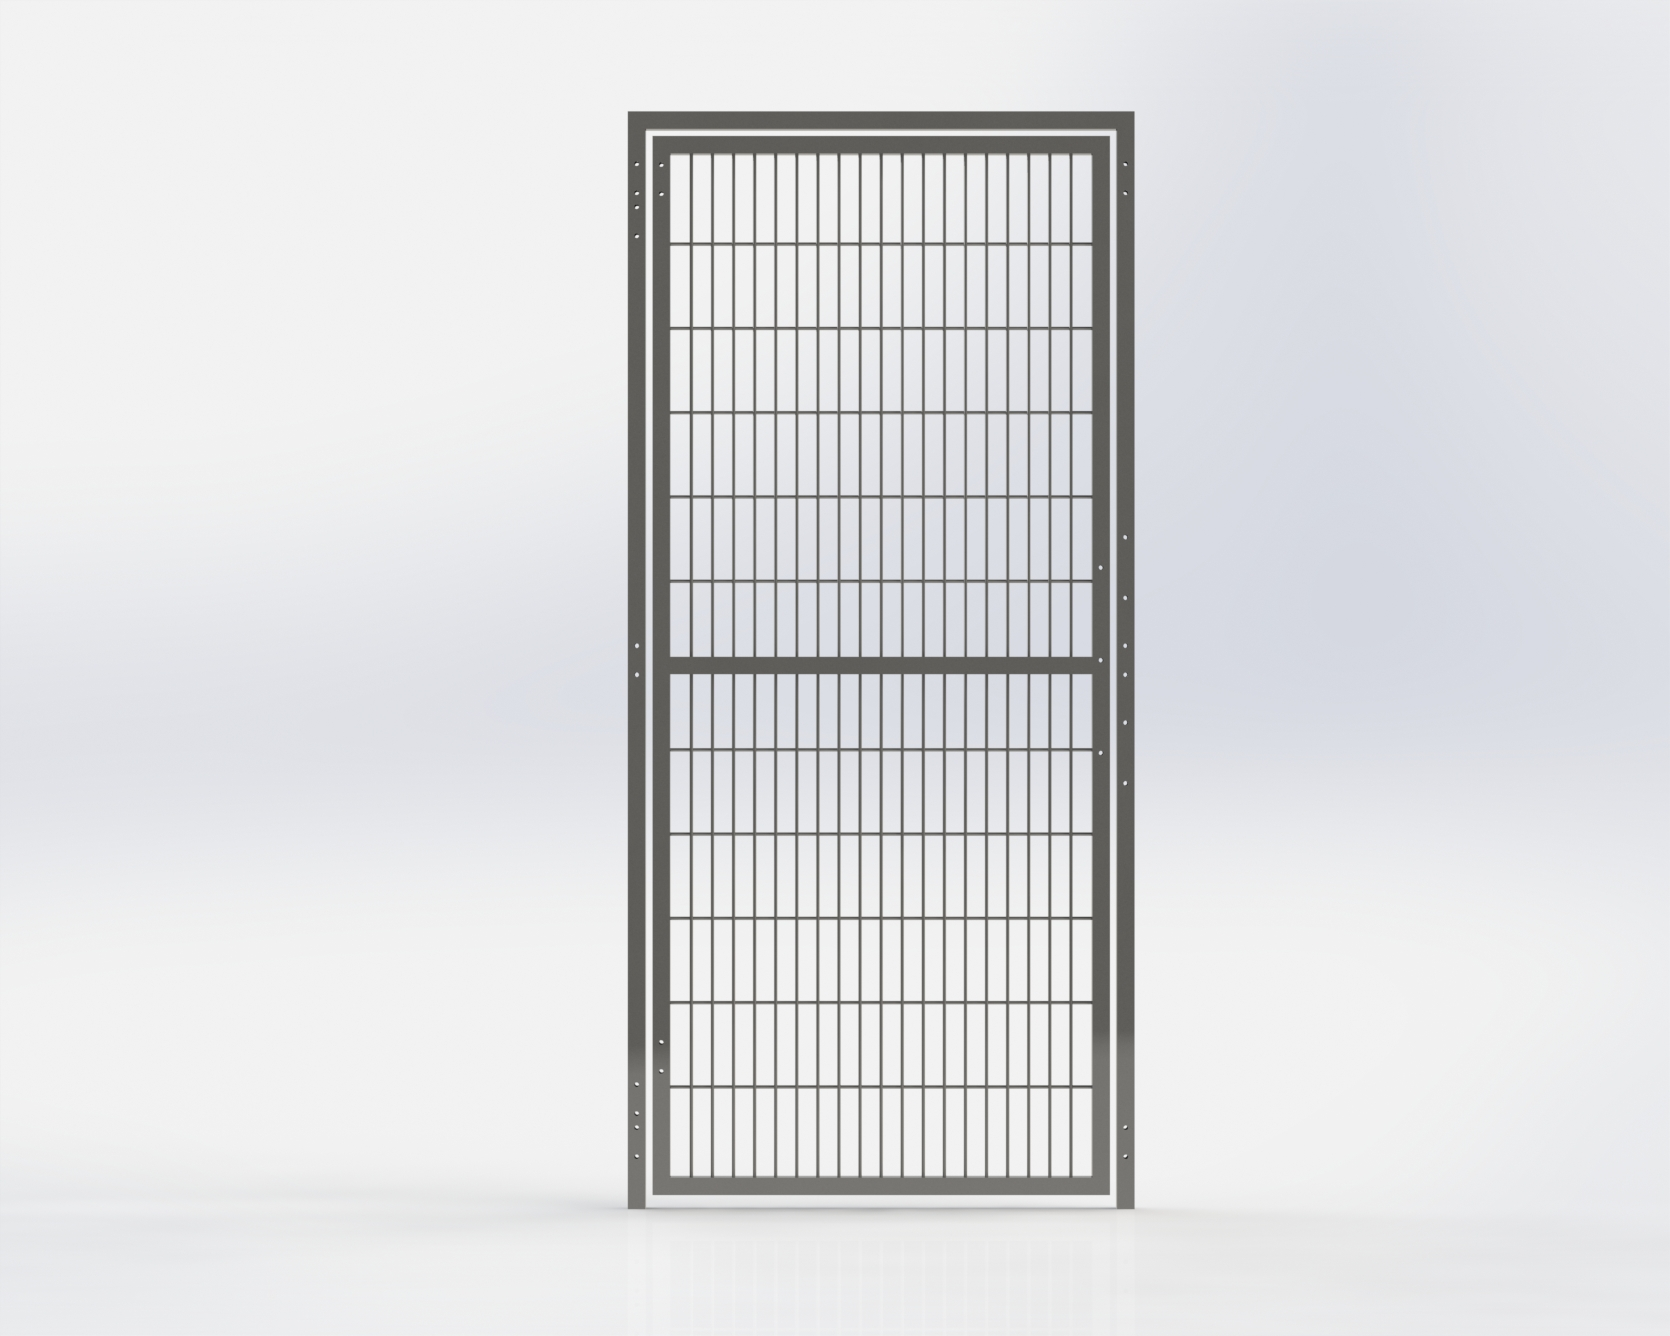 Grill Run Gate 762mm Wide x 1981.2mm High,Right Hand Latch